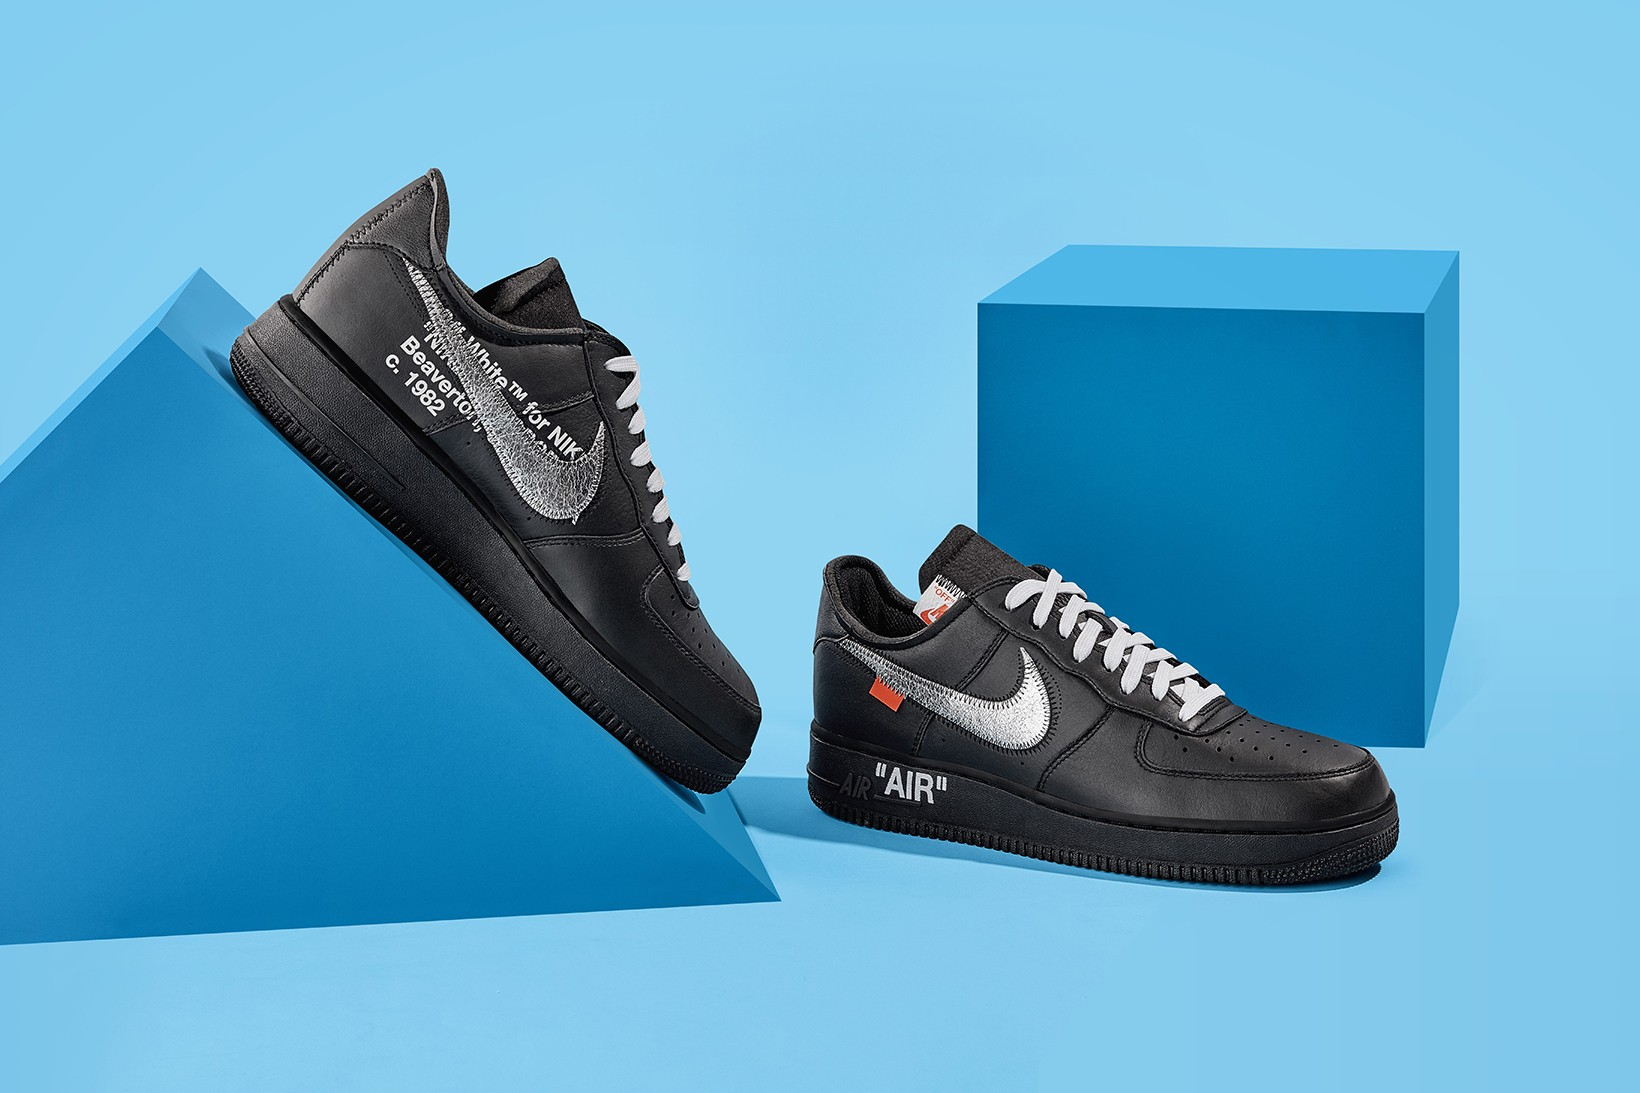 Sneakers with Highest Resale Value